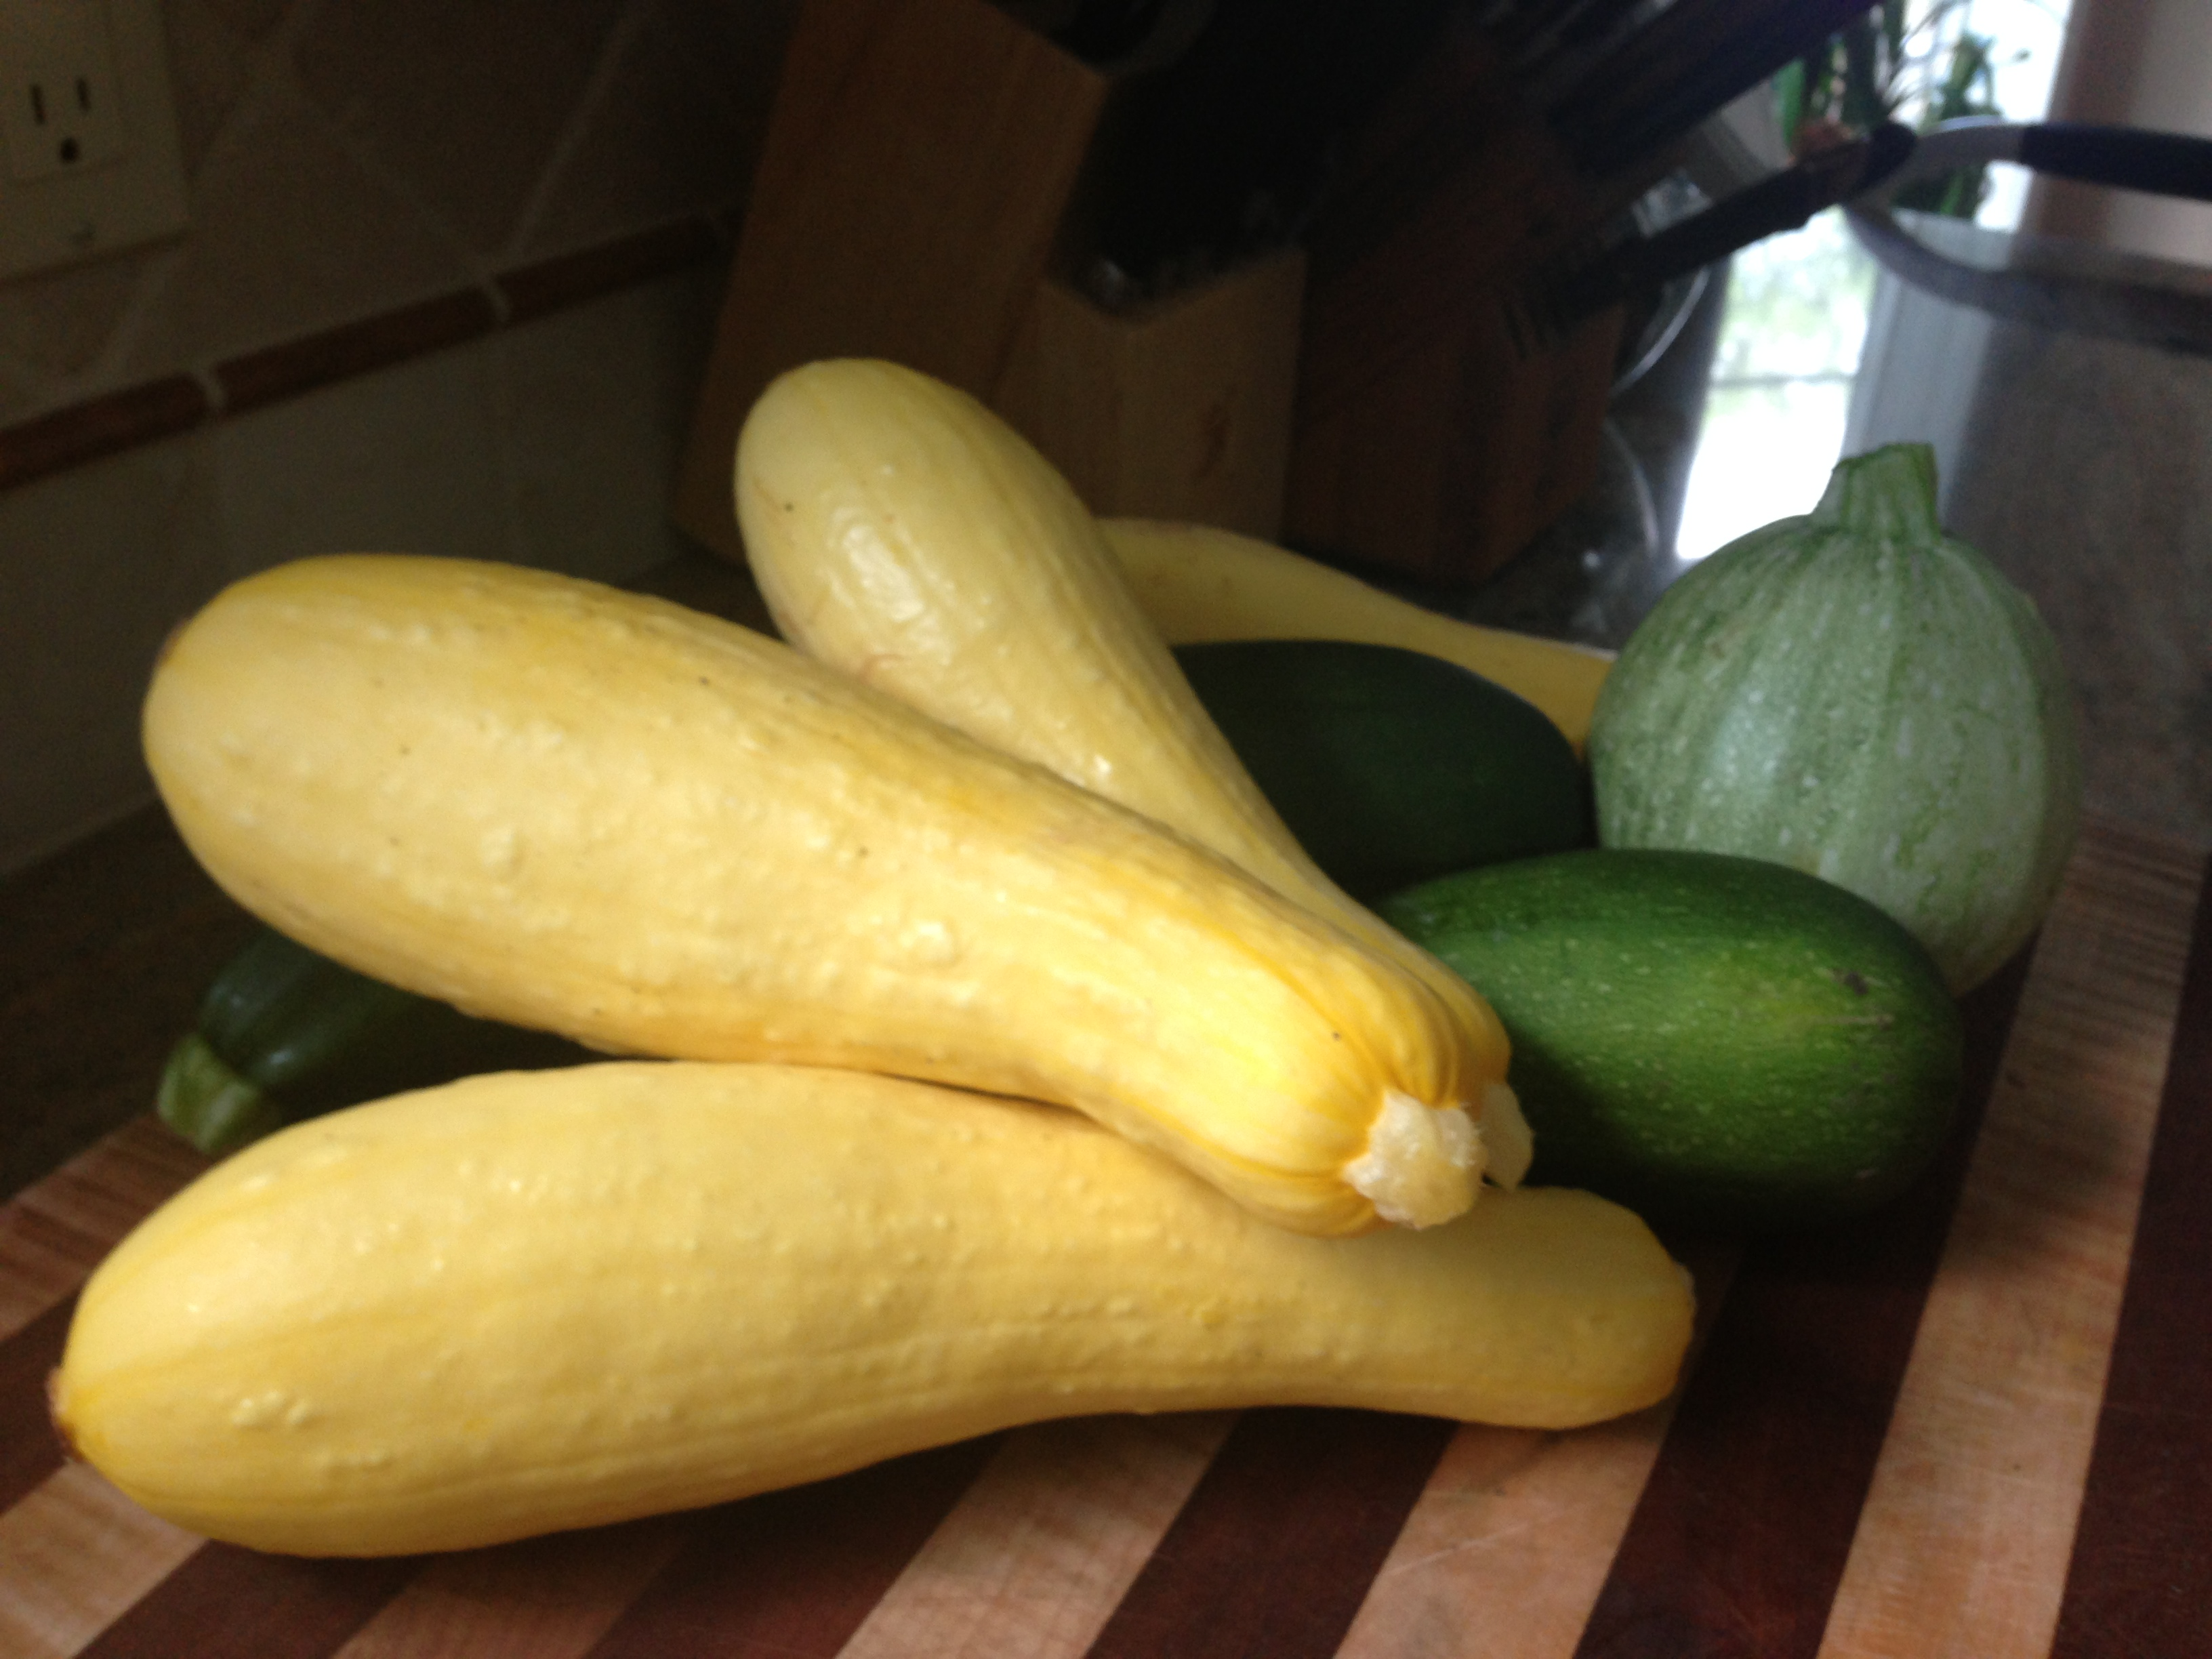 Post weekend garden squash